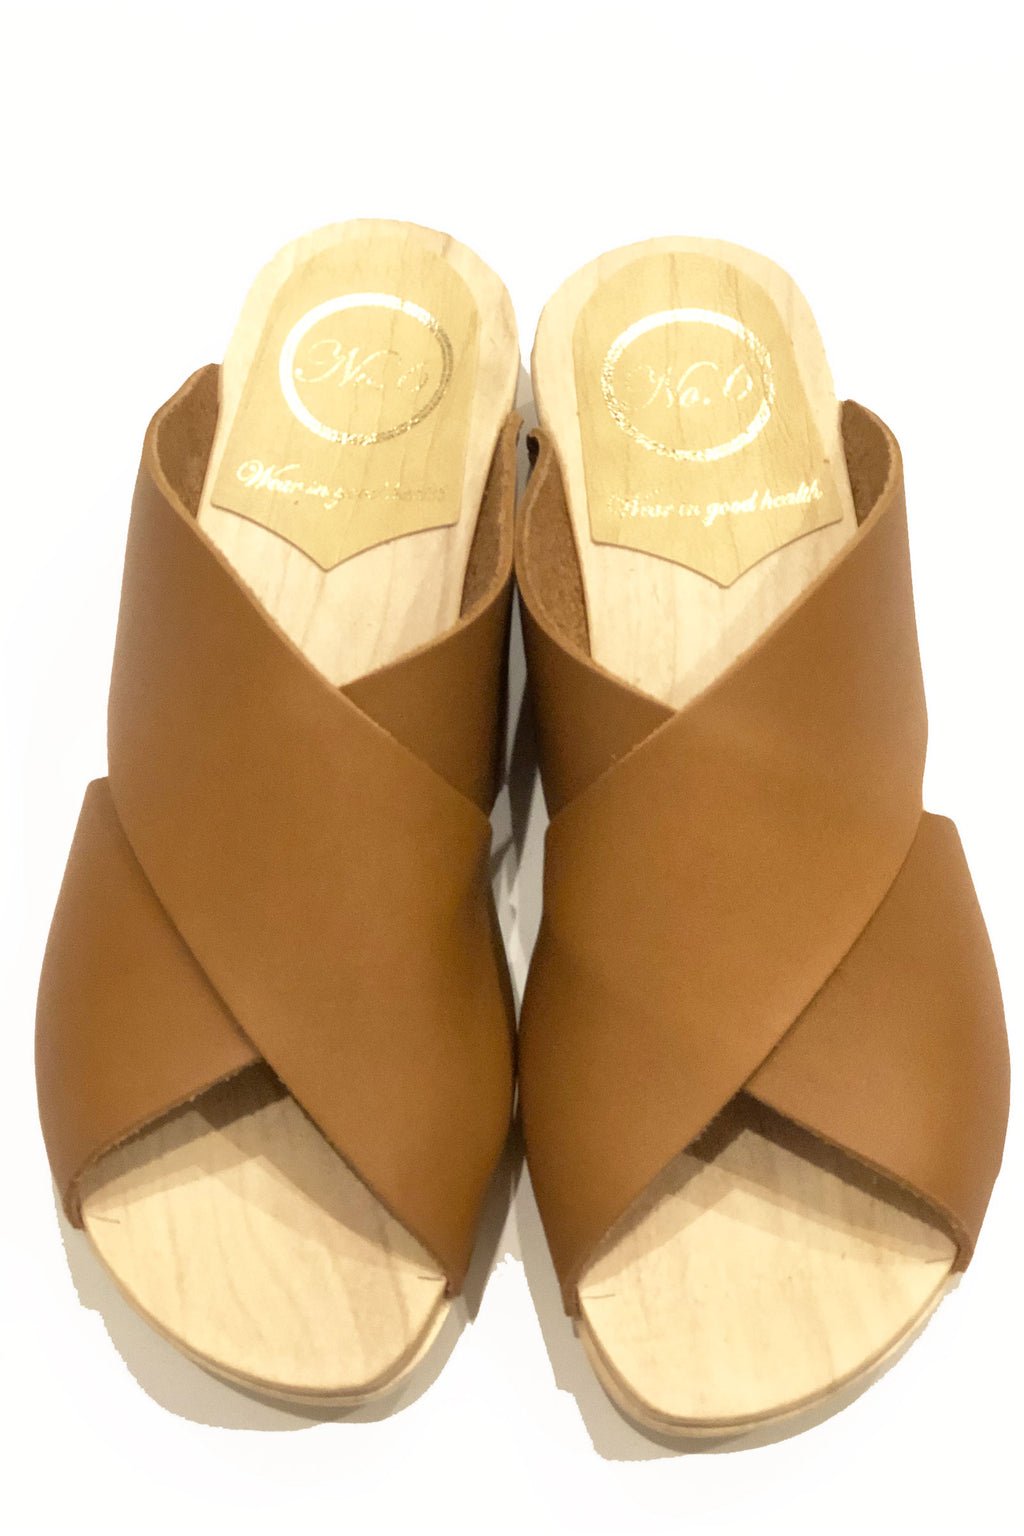 NO.6 Frida Clog Flat in Palomino